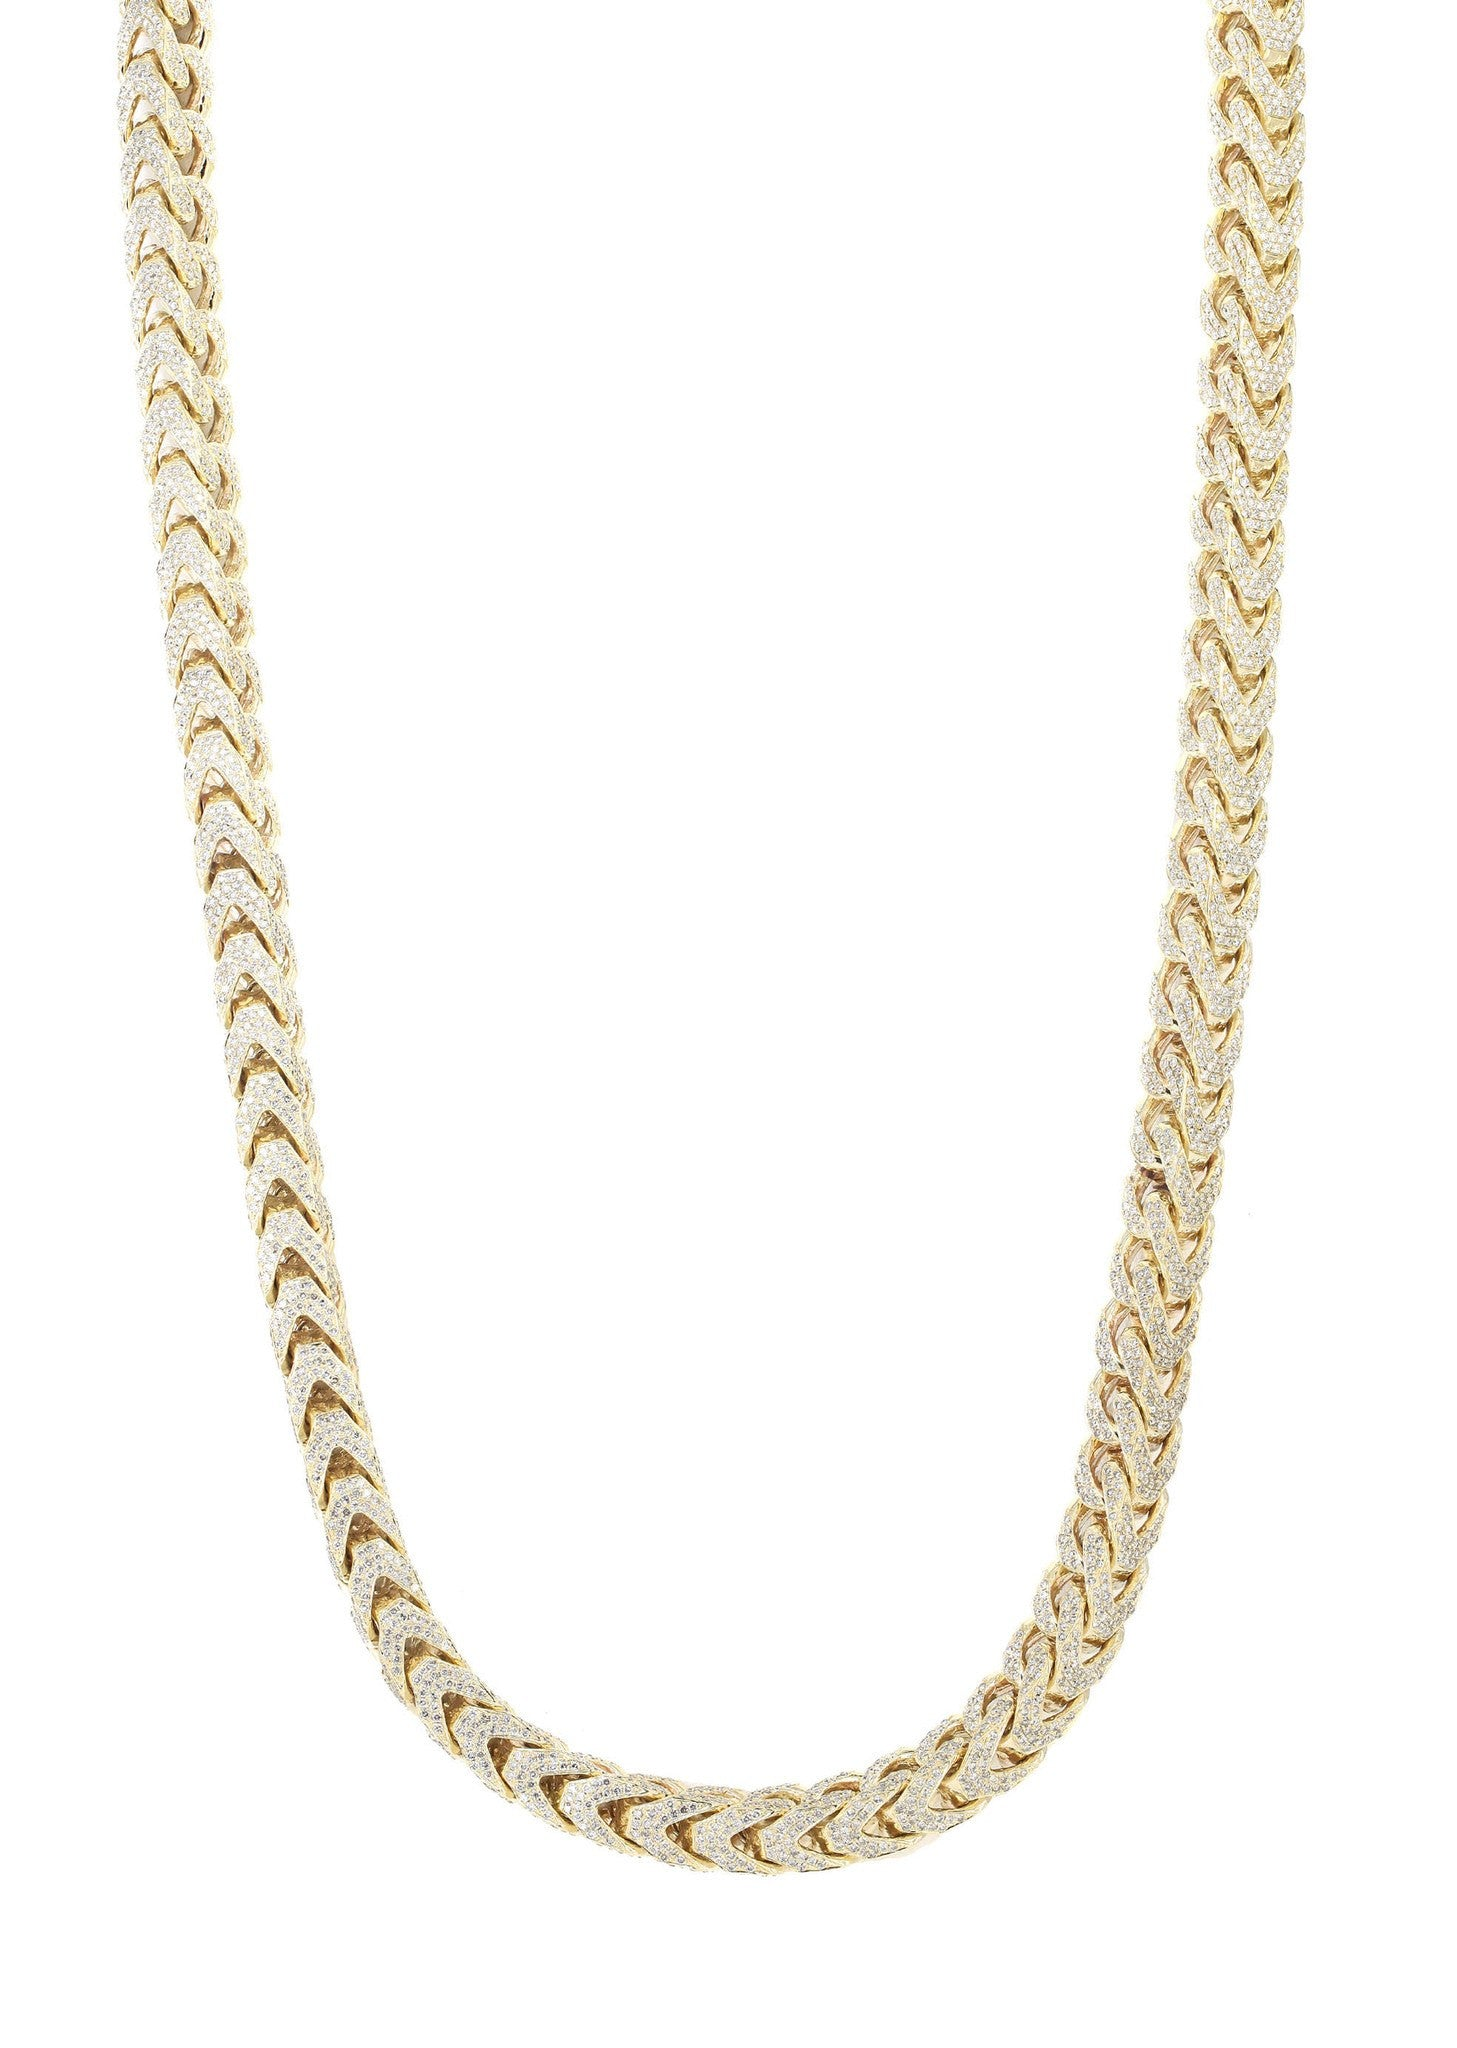 7fc2033e5ad Iced Out Franco Chain | 64.79 Carats | 10 Mm Width | 32 Inch Length ...